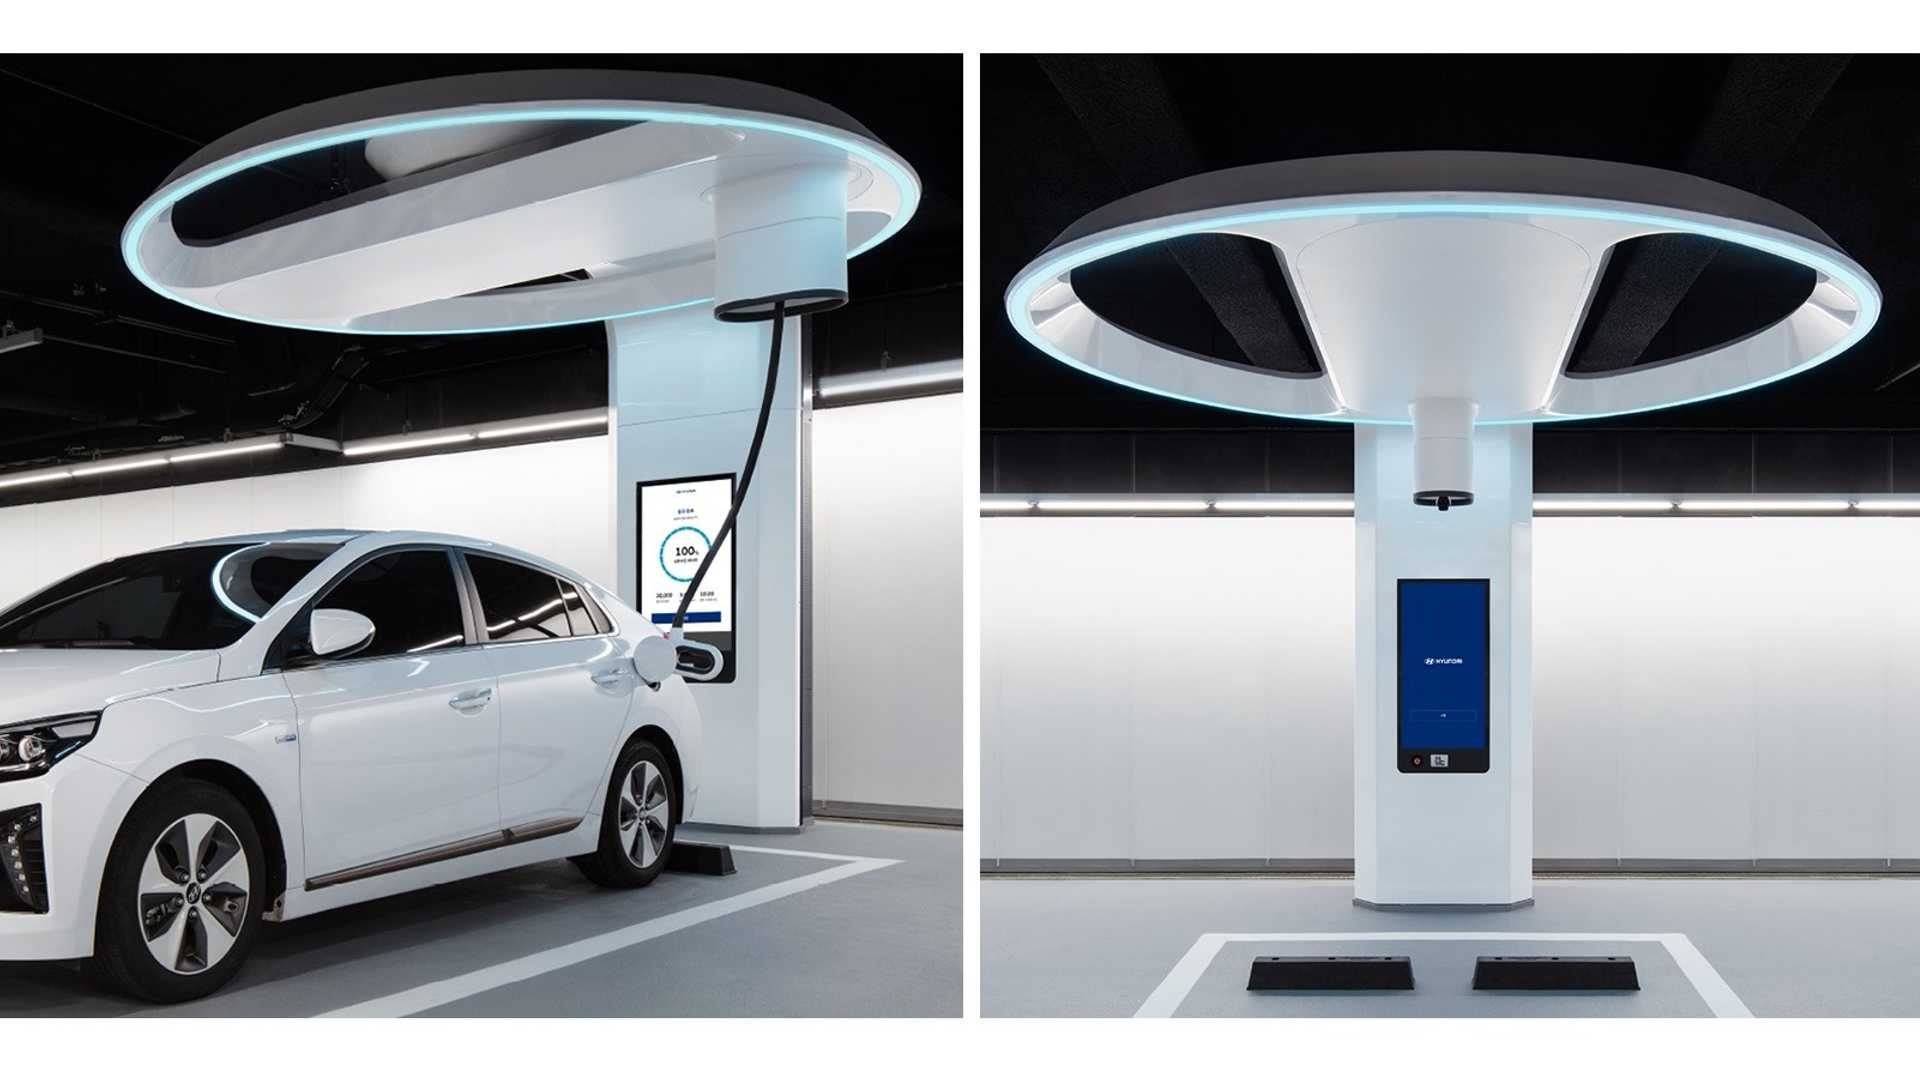 Hyundai Shows A New Ultra-Fast Charger Concept